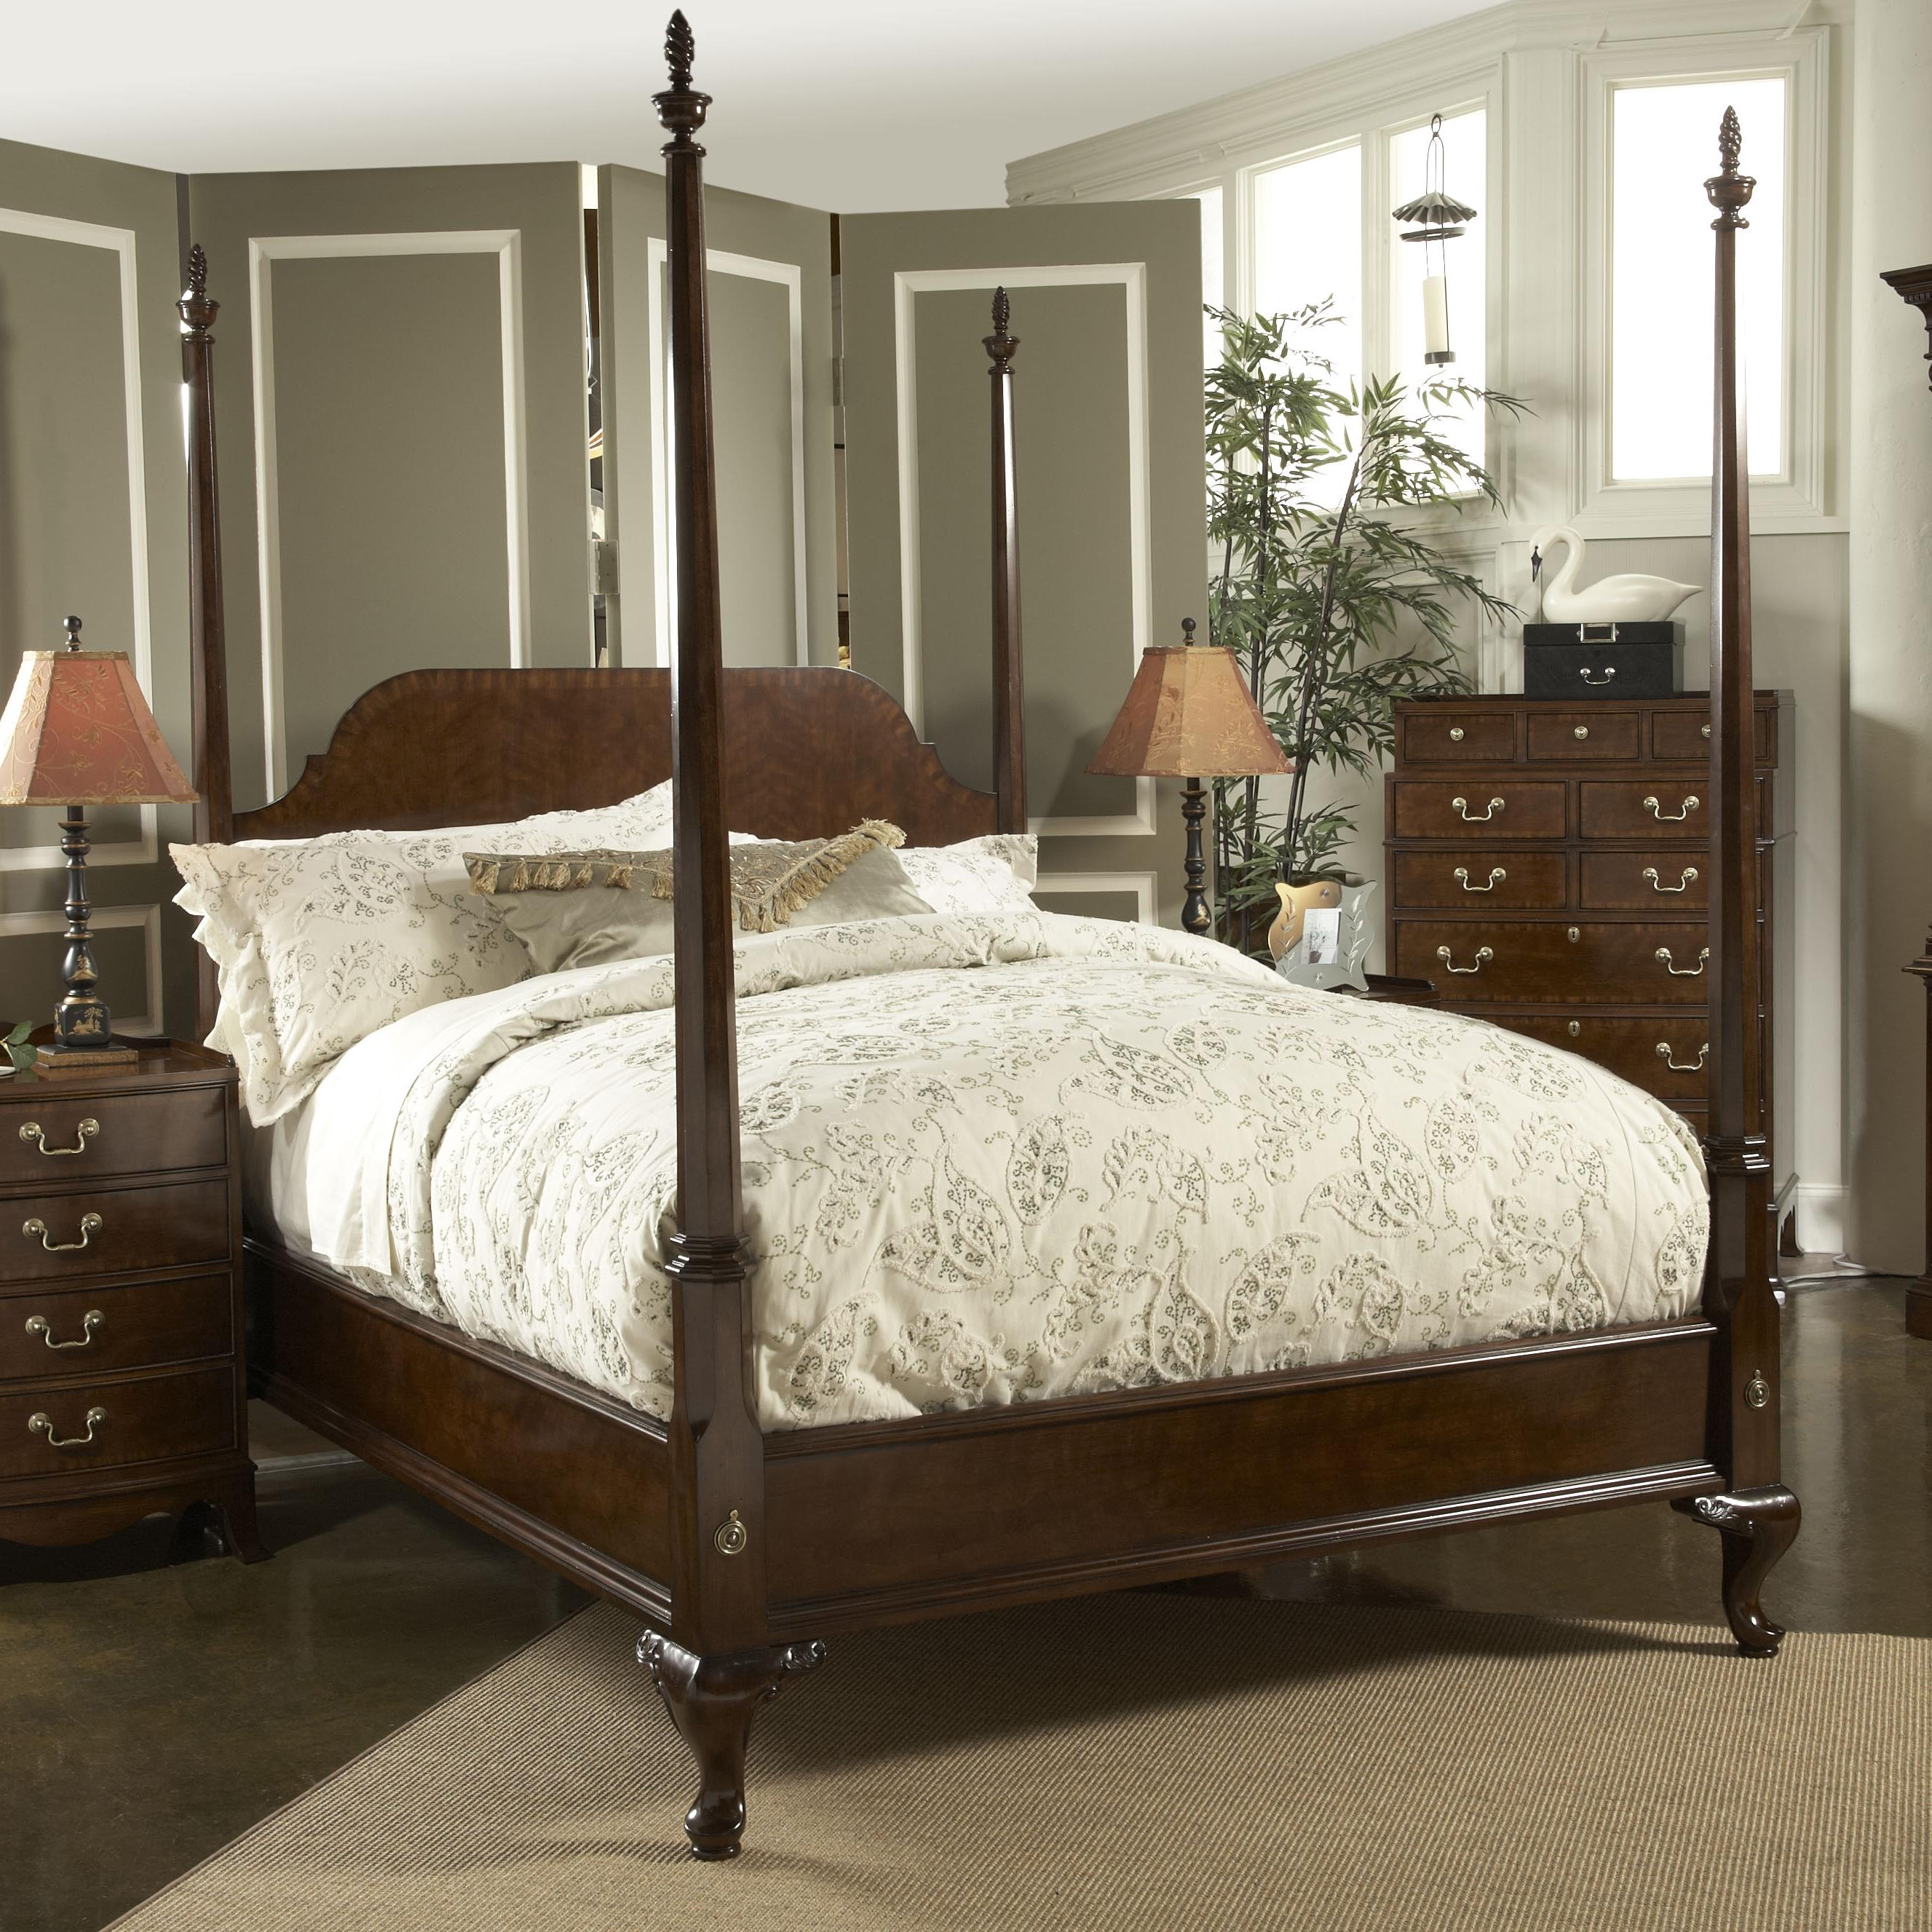 High Poster Bed King King Size Bridgeport Pencil Poster Bed By Fine Furniture